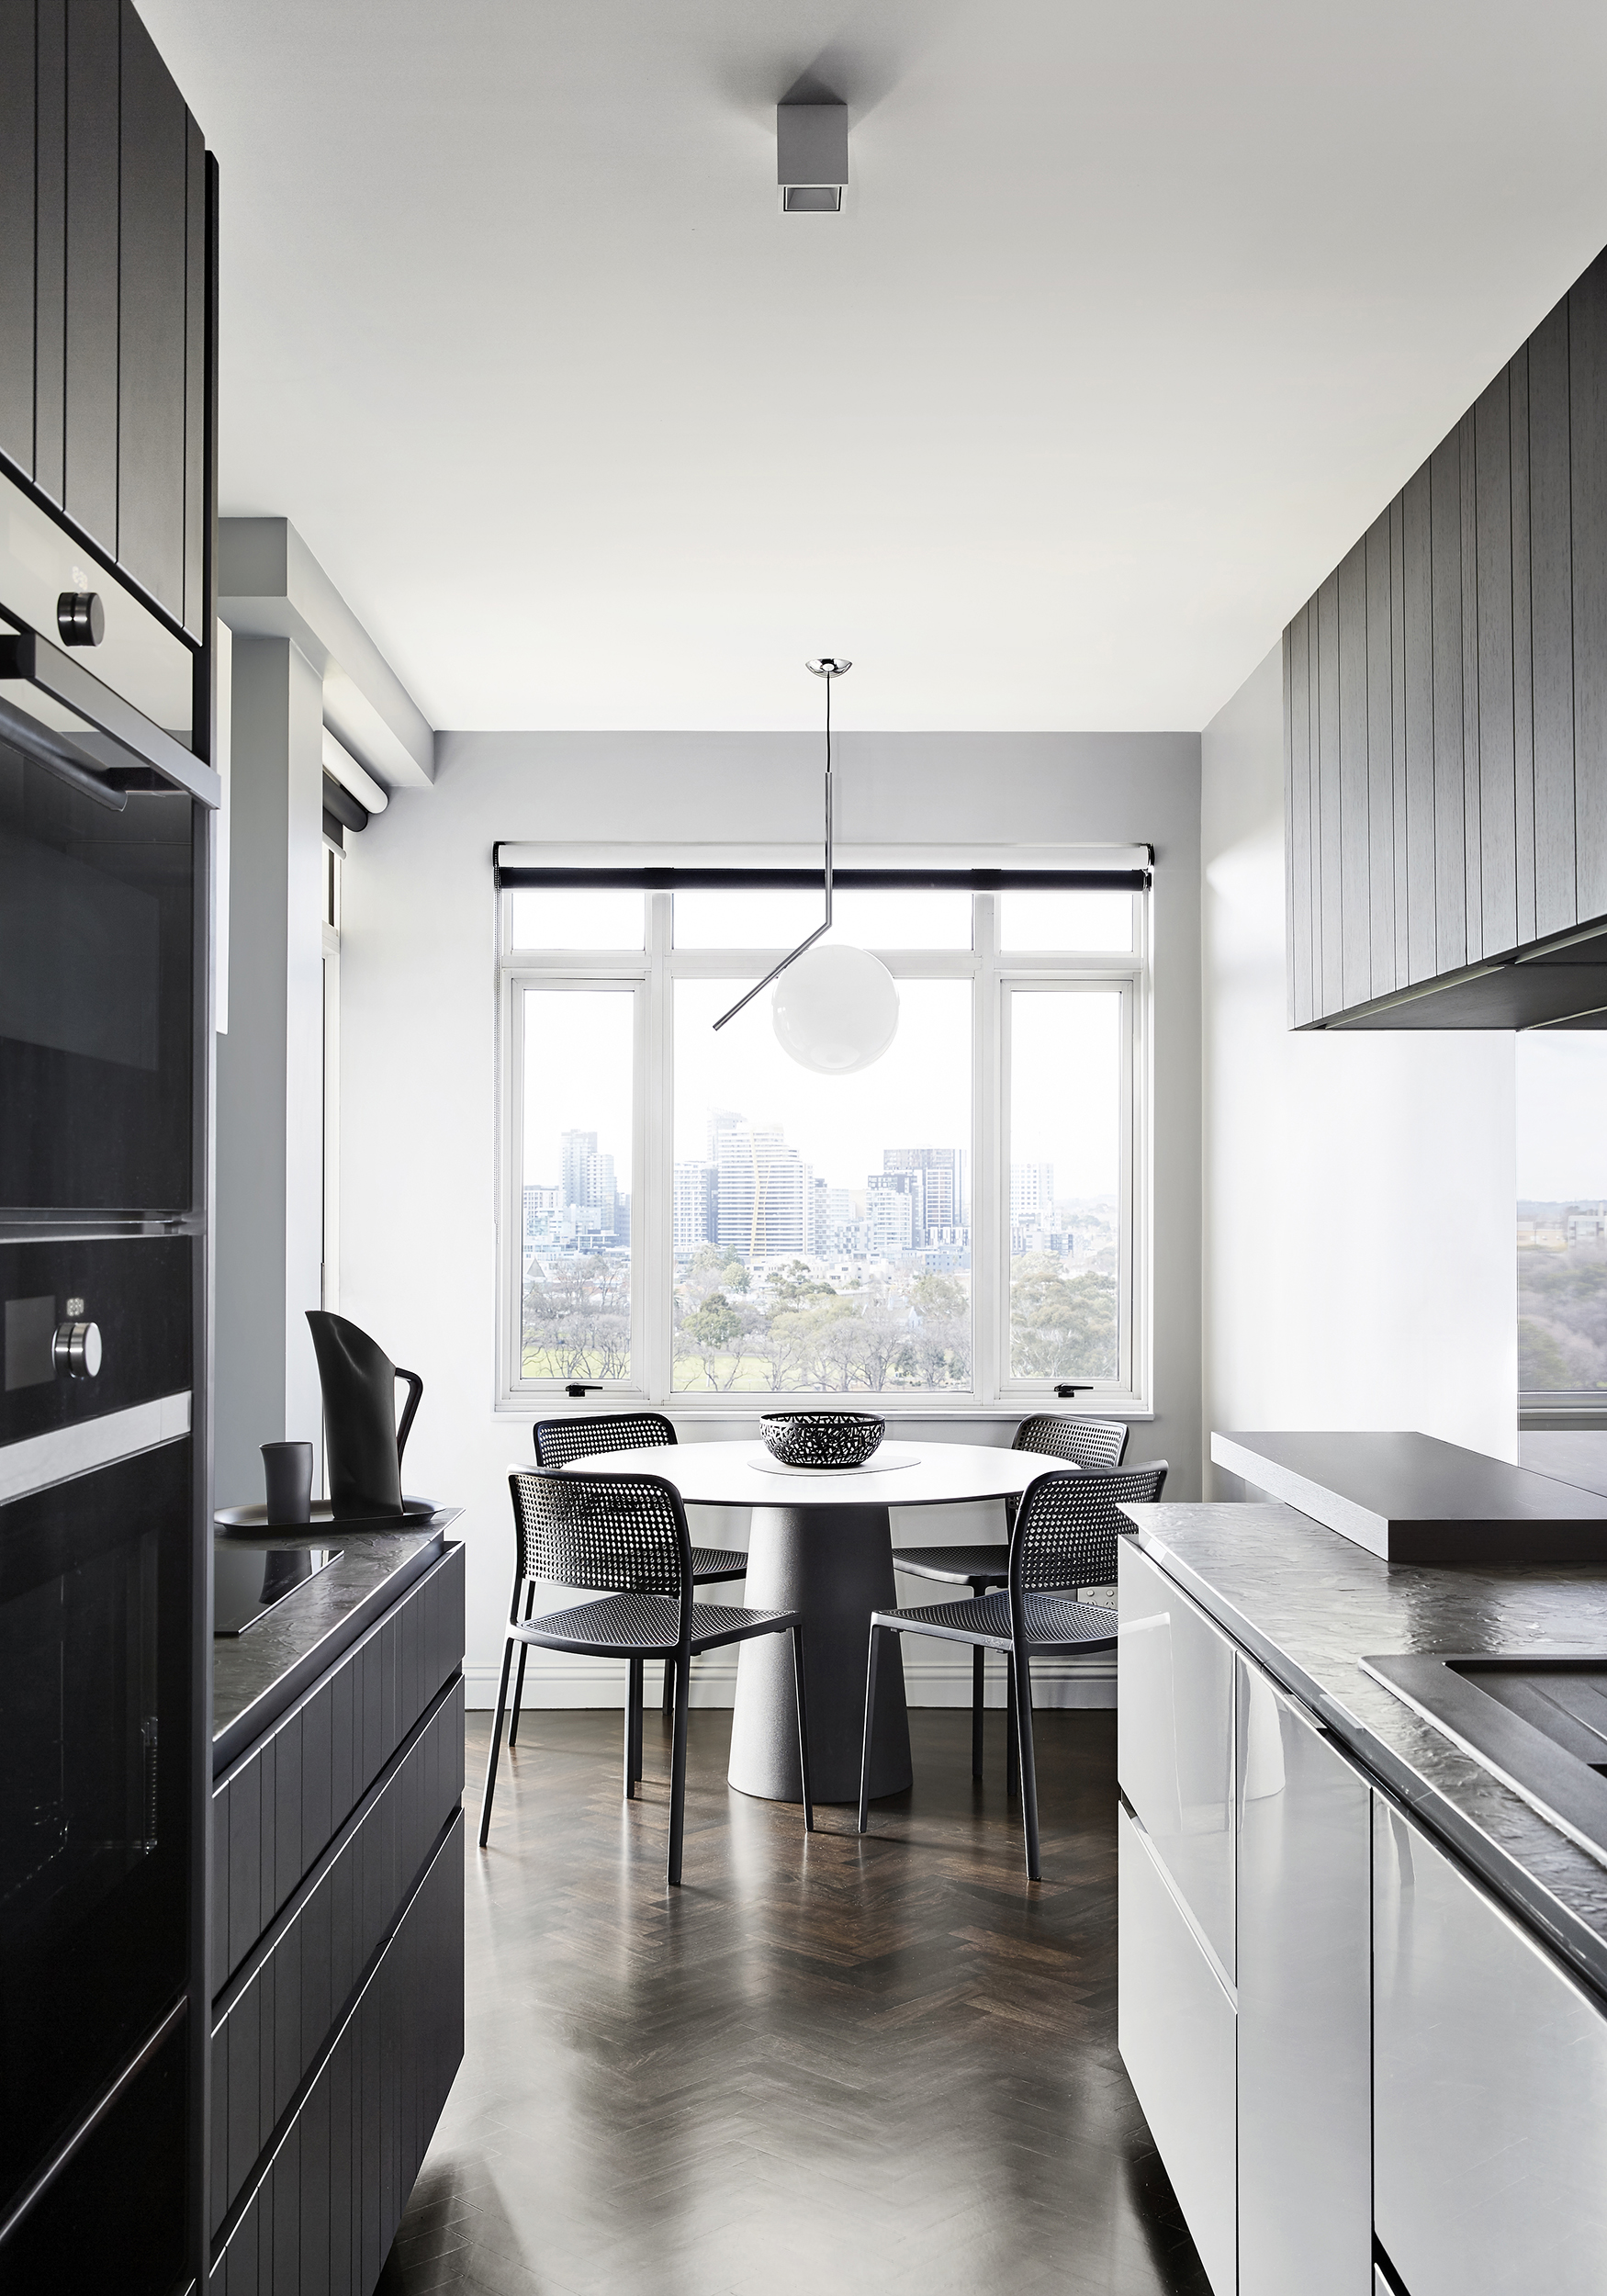 Winter Architecture_Apartment 1405_Photography by Tess Kelly_0.jpg